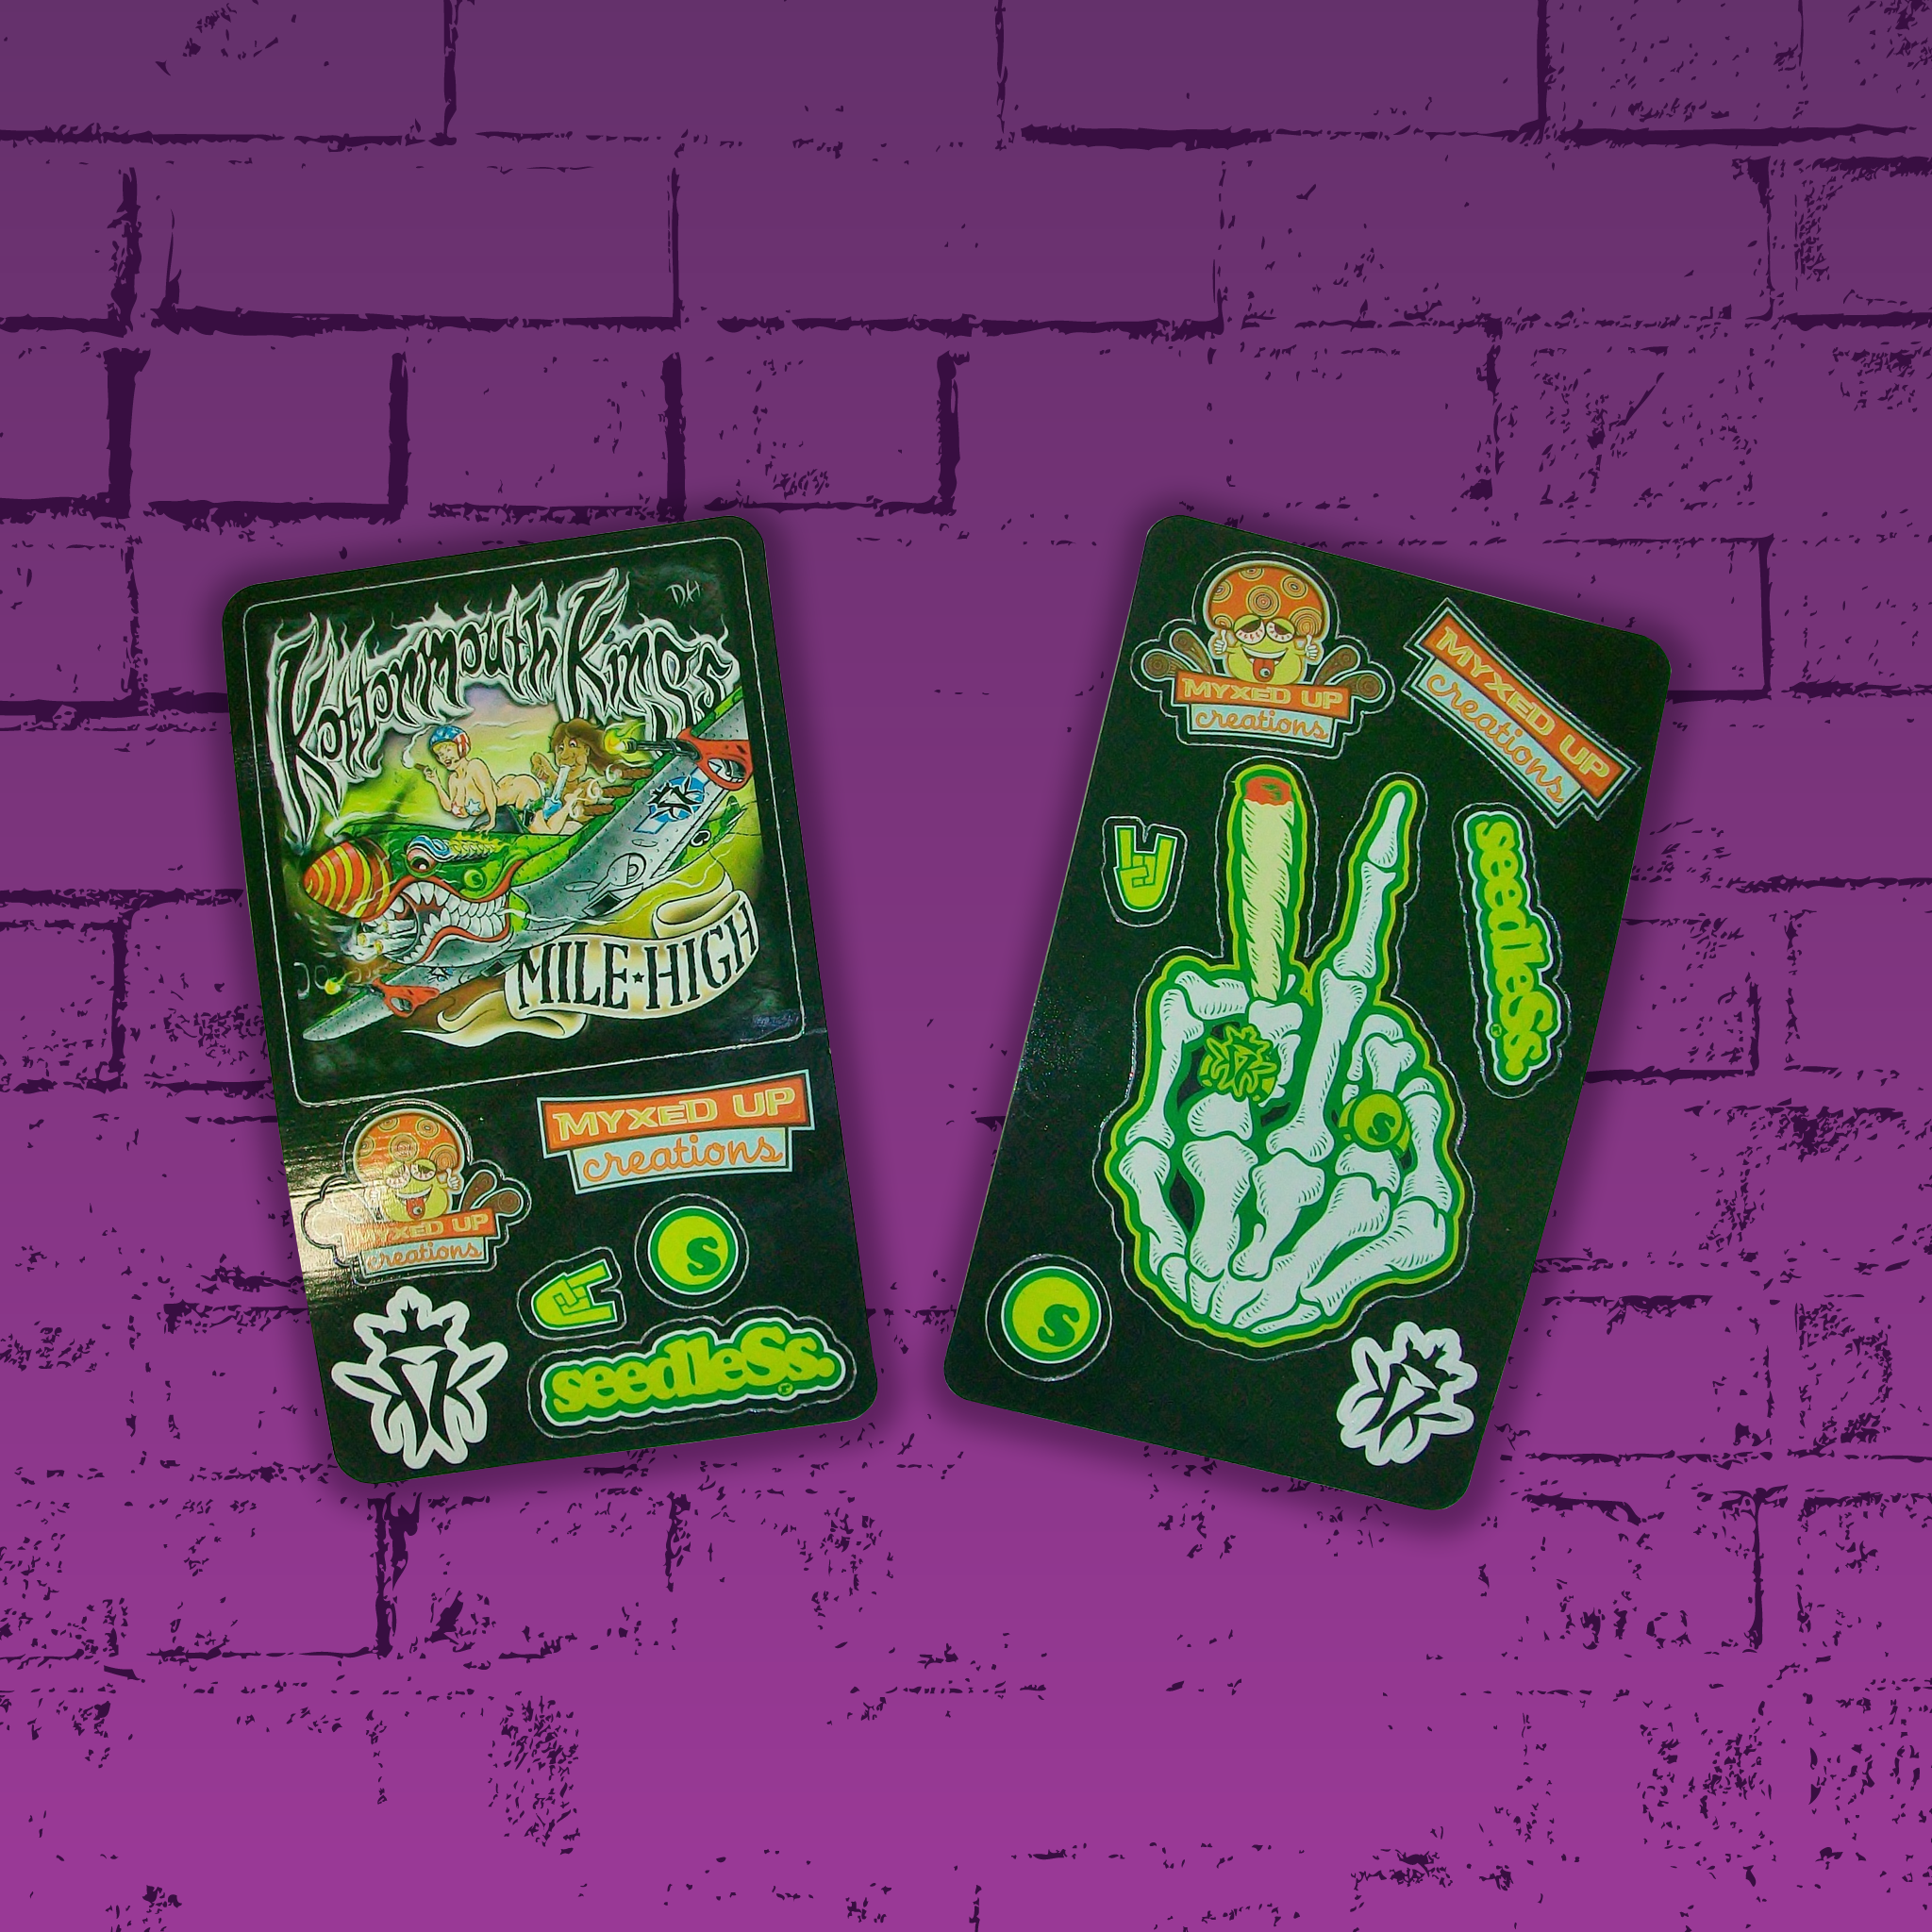 KMK Peace Out Seedless x Myxed Up Collaboration Sticker Packs